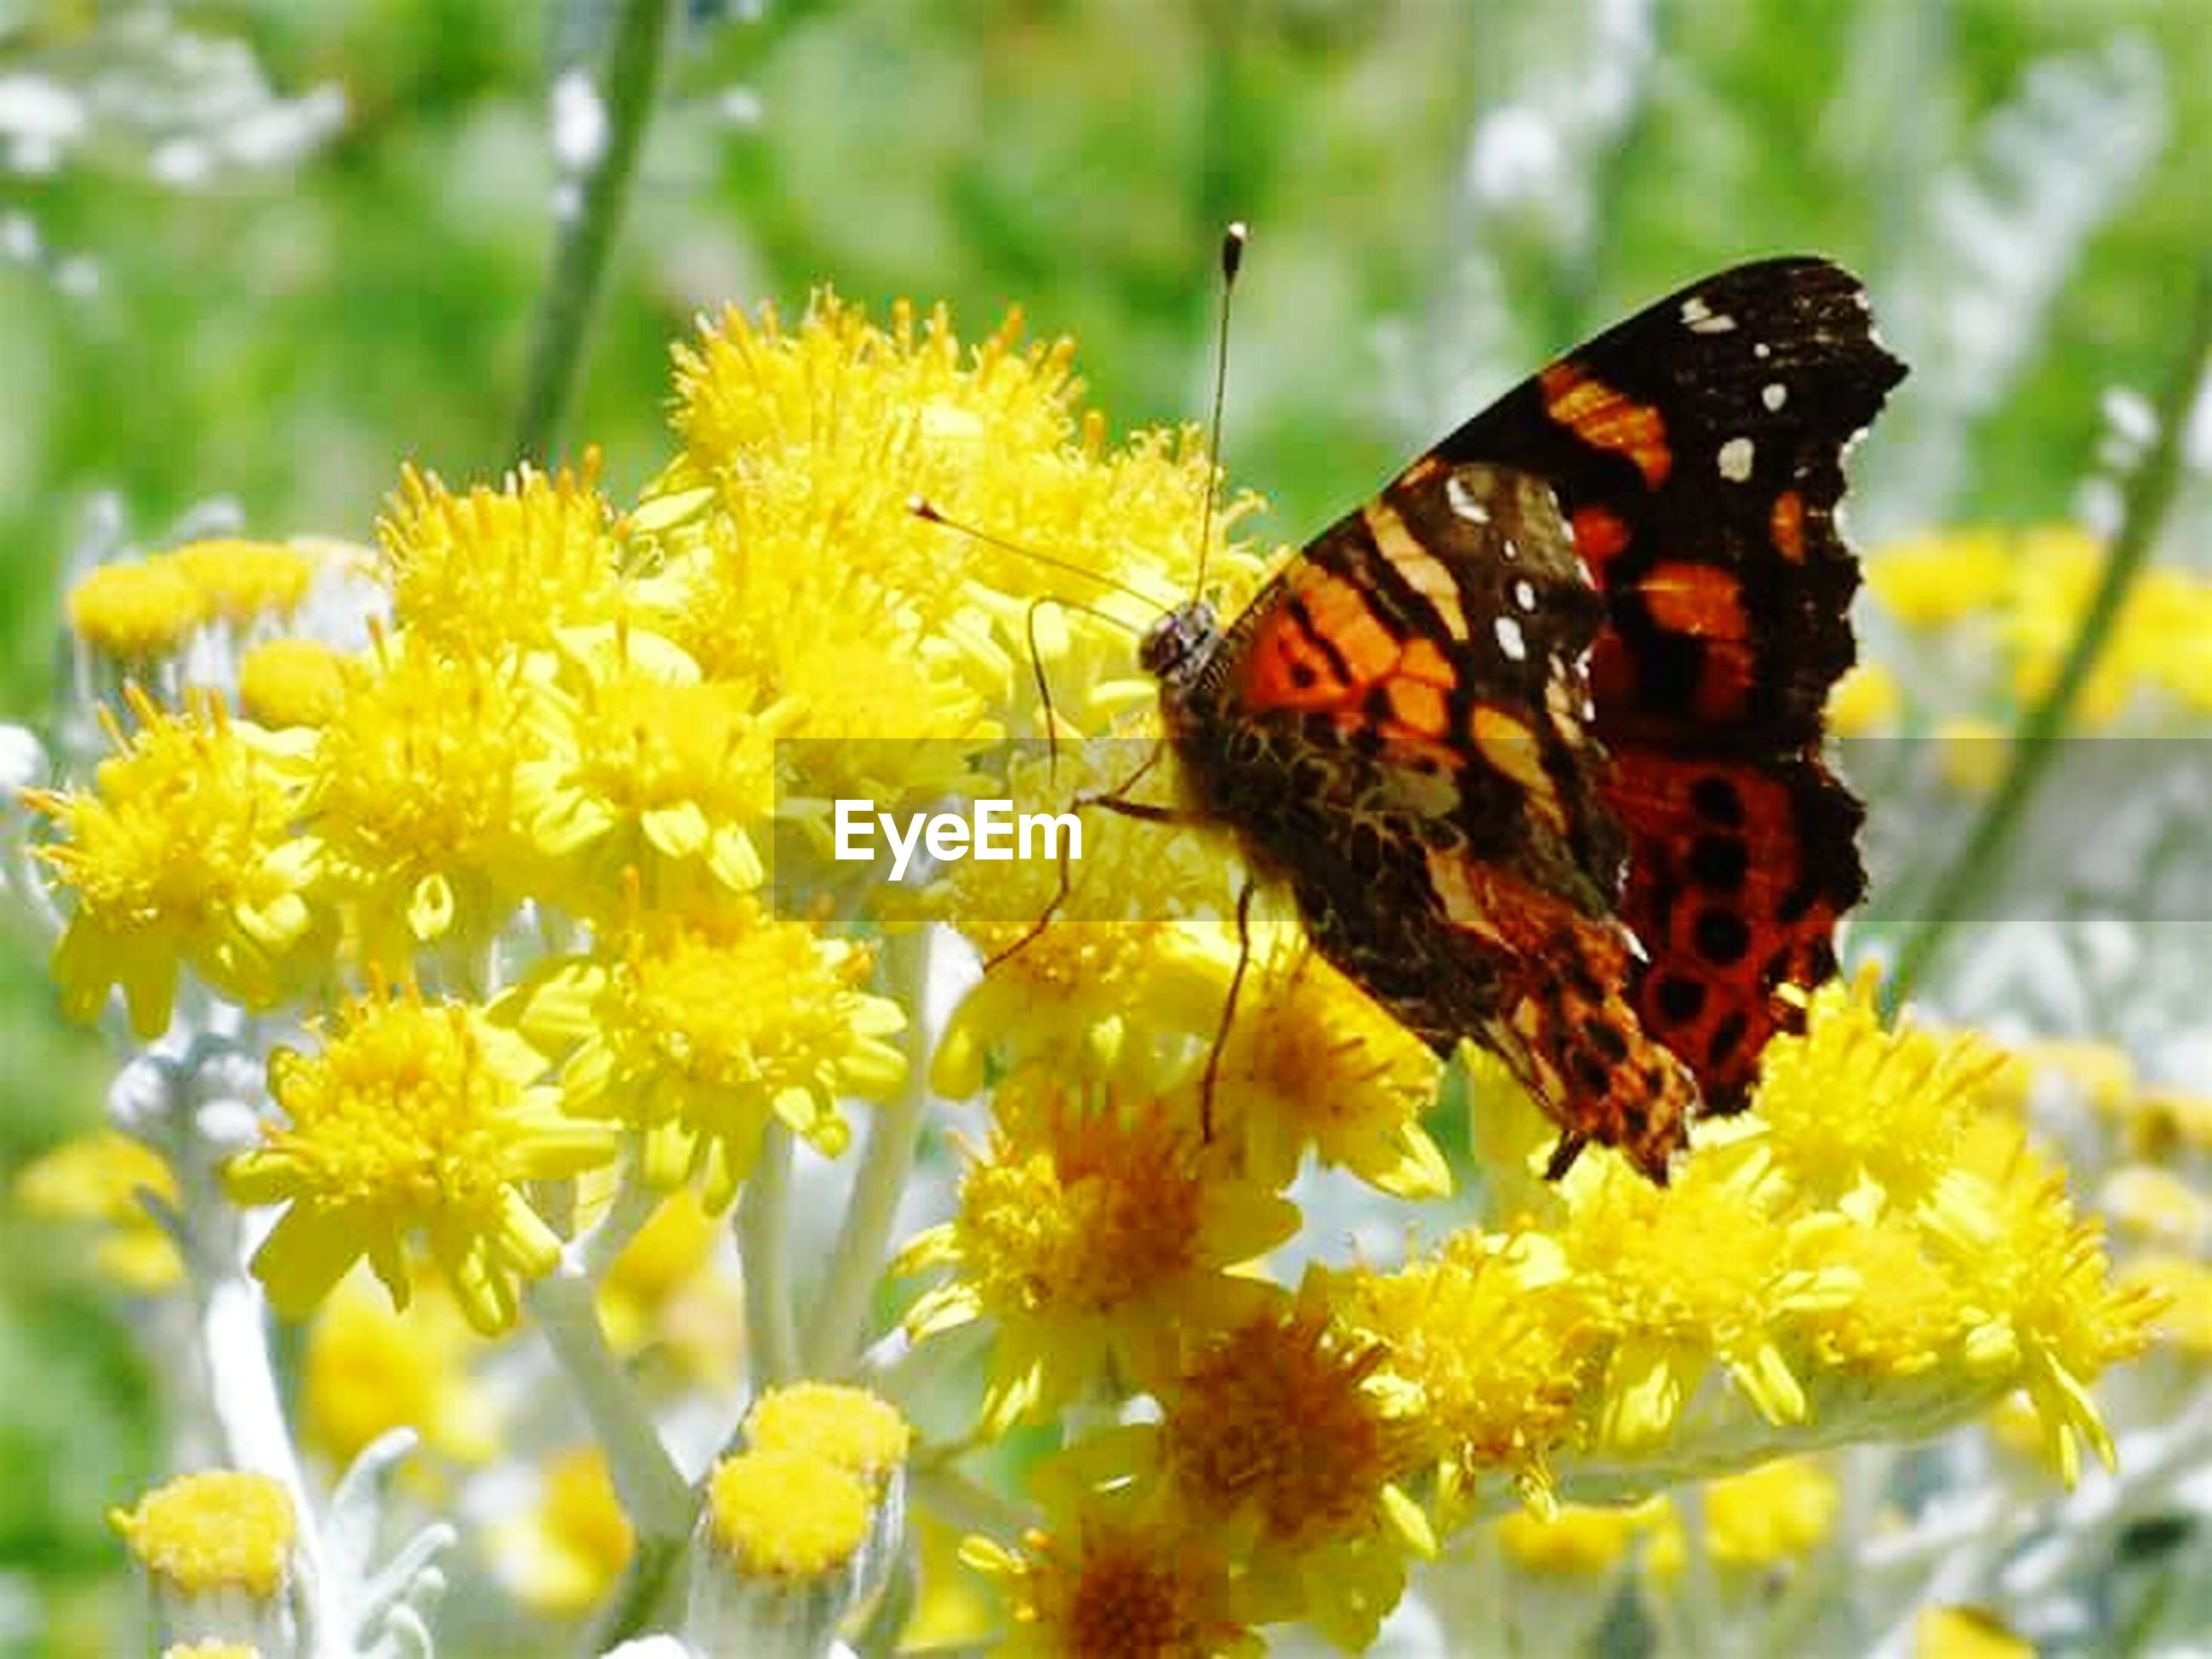 insect, flower, one animal, animal themes, animals in the wild, wildlife, butterfly - insect, pollination, fragility, freshness, focus on foreground, petal, butterfly, yellow, beauty in nature, symbiotic relationship, close-up, nature, growth, flower head